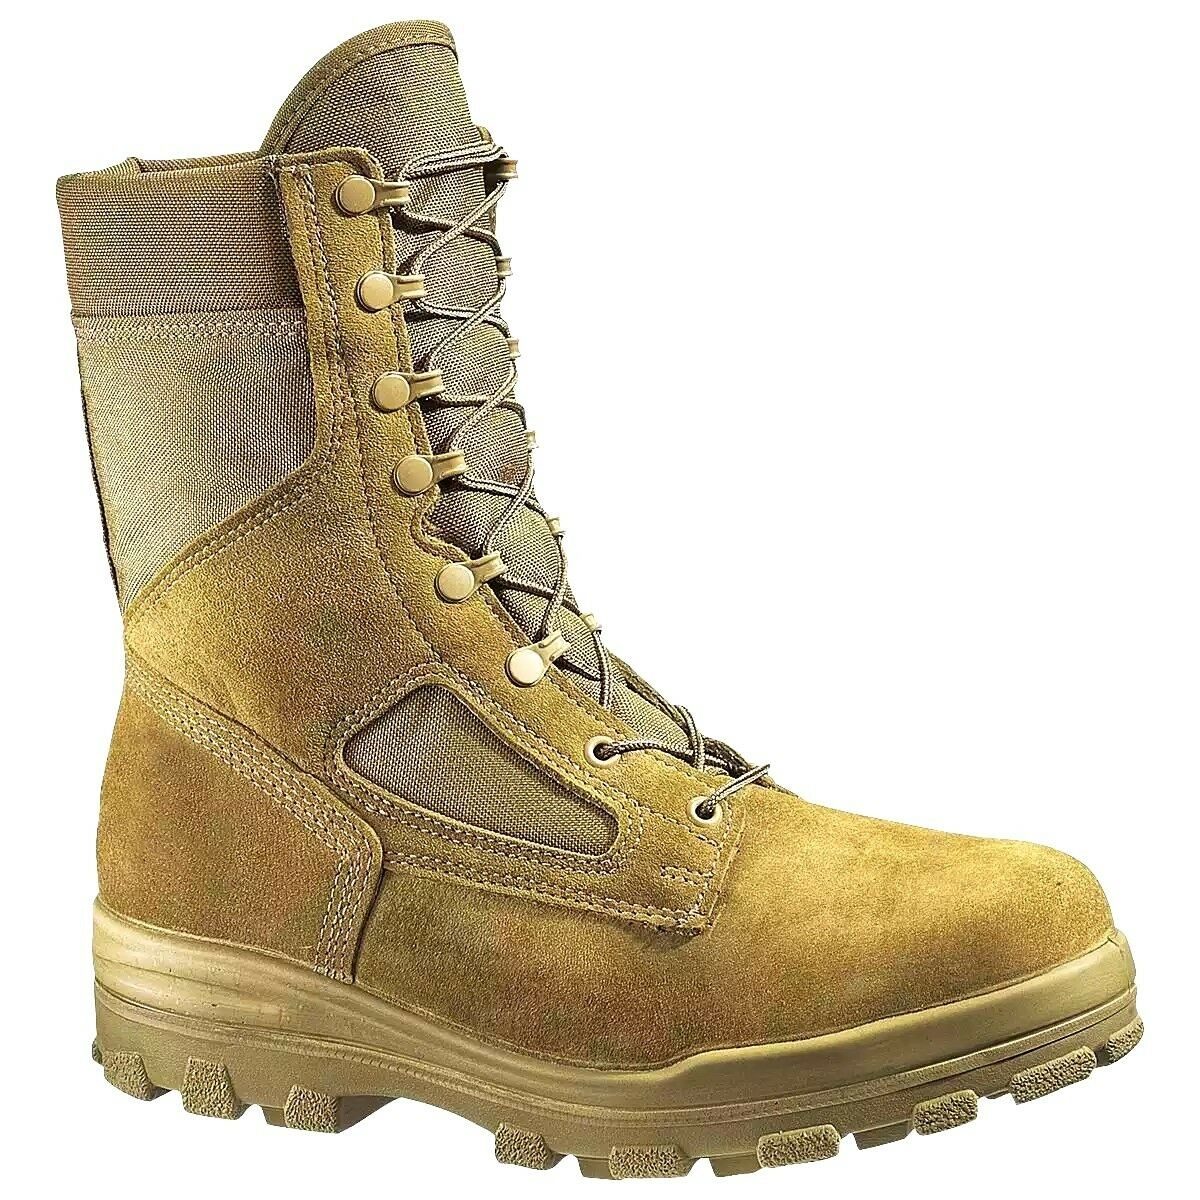 BATES 70701 US MARINES BOOTS ORIGINAL STEEL TOE MADE IN USA COYOTE Size 15 M